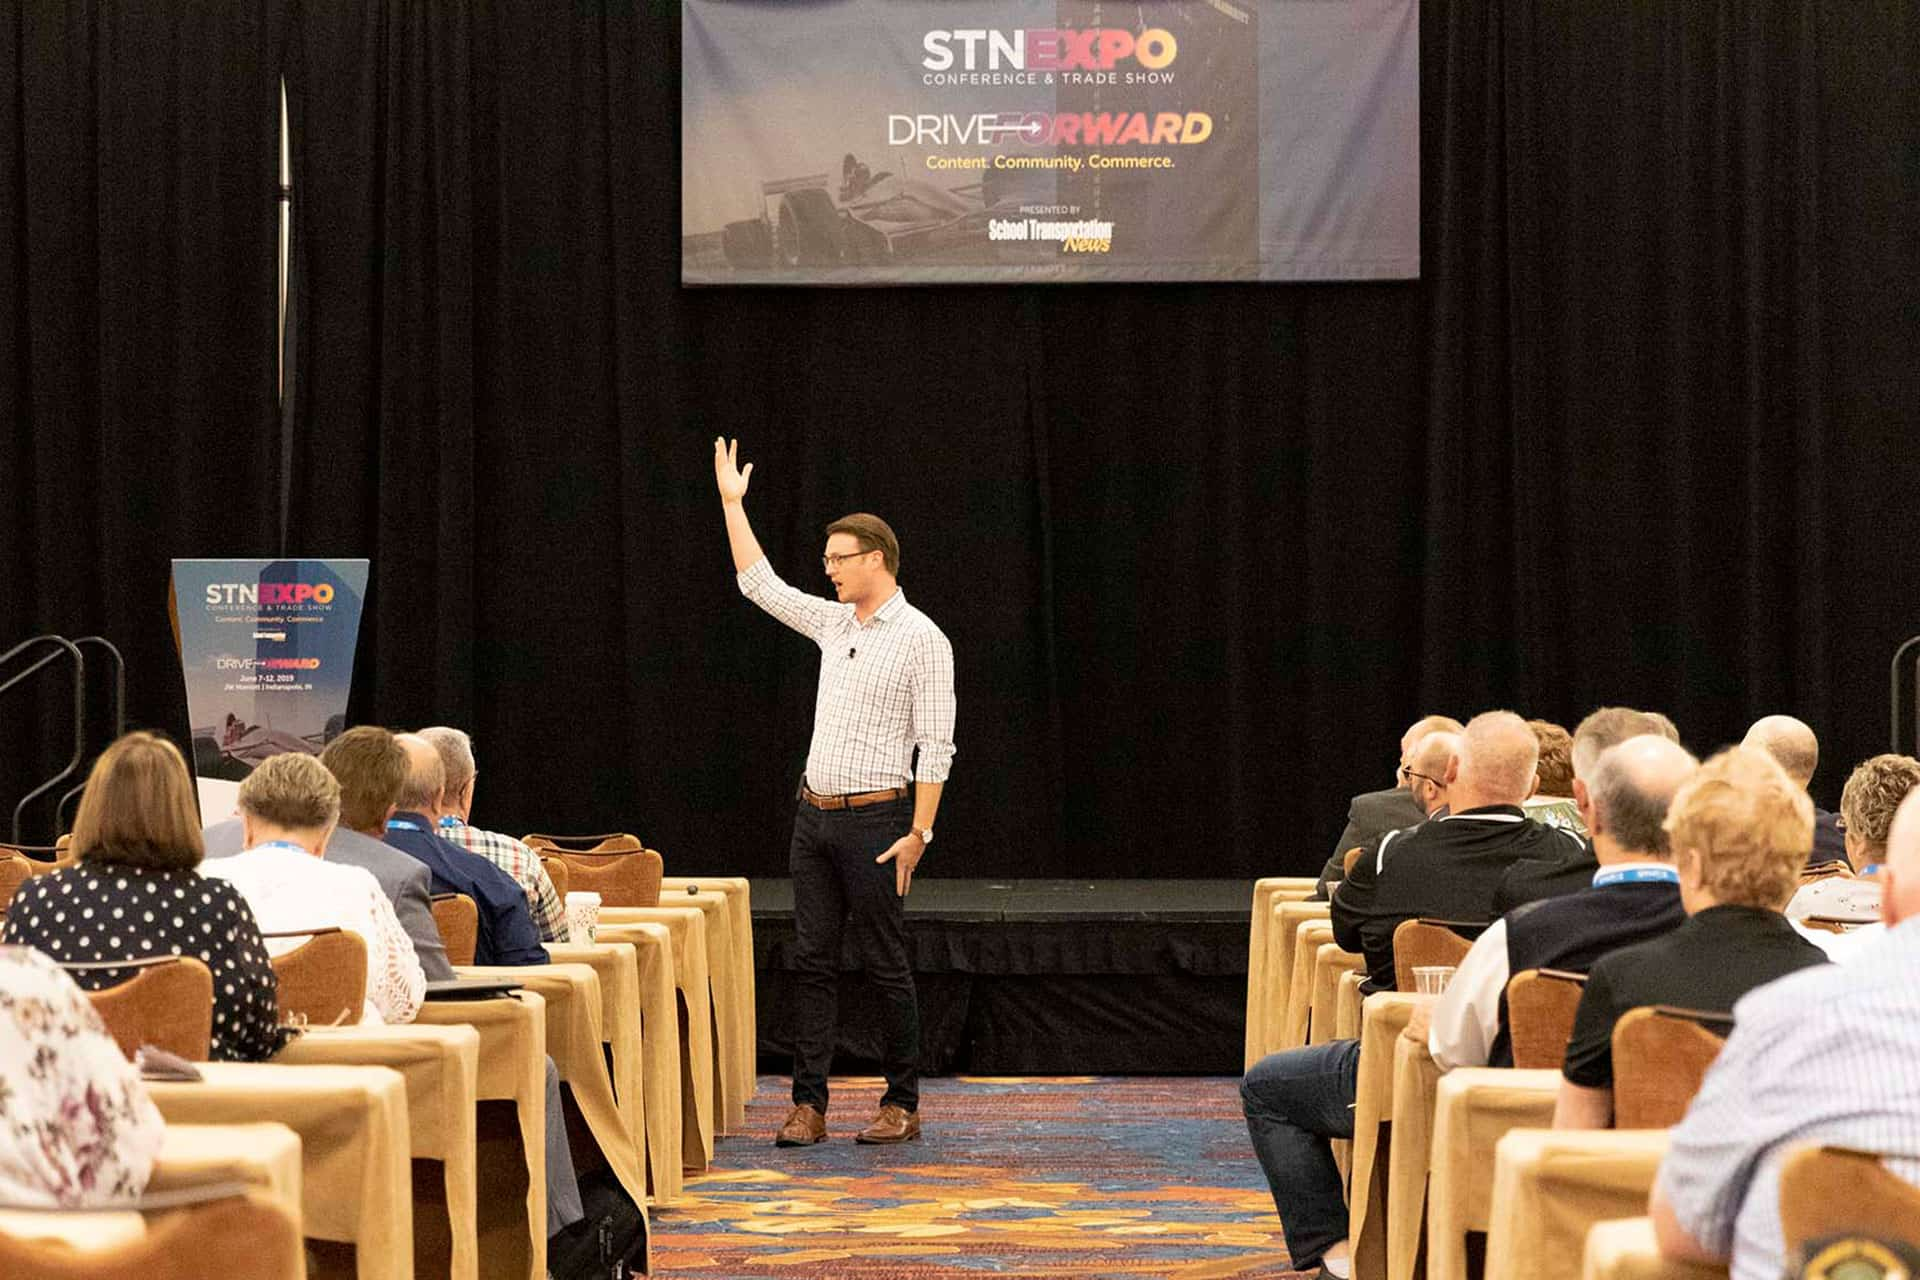 STN EXPO Indy Keynote Delivers Strategies on Converting Dreams to